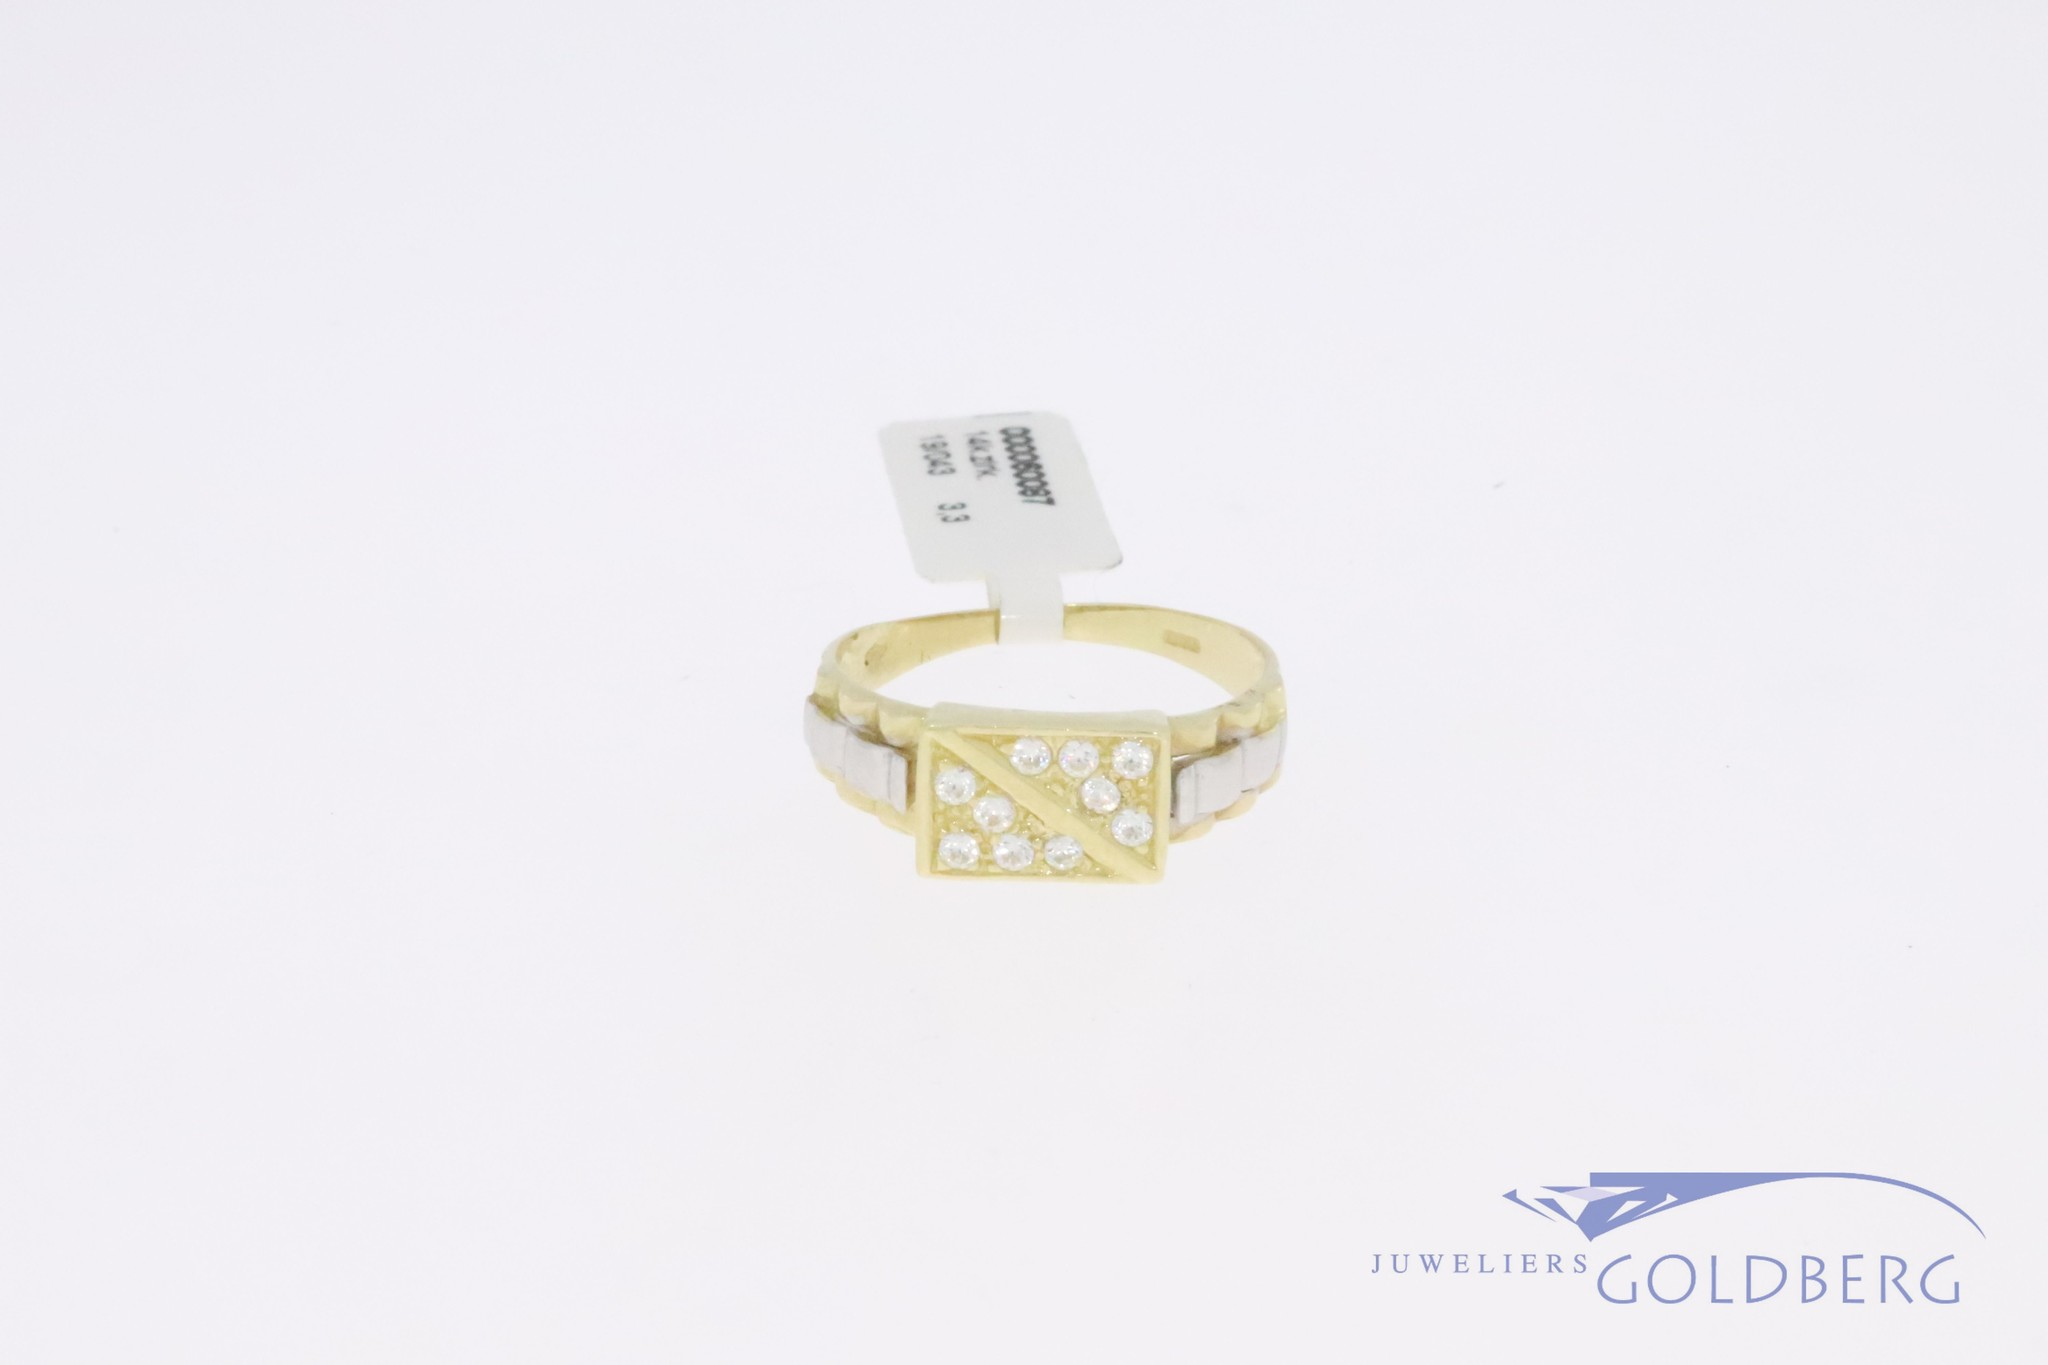 Sturdy 14k gold bicolor retro signet ring thin  ('80s-'90s style) with zirkonia's